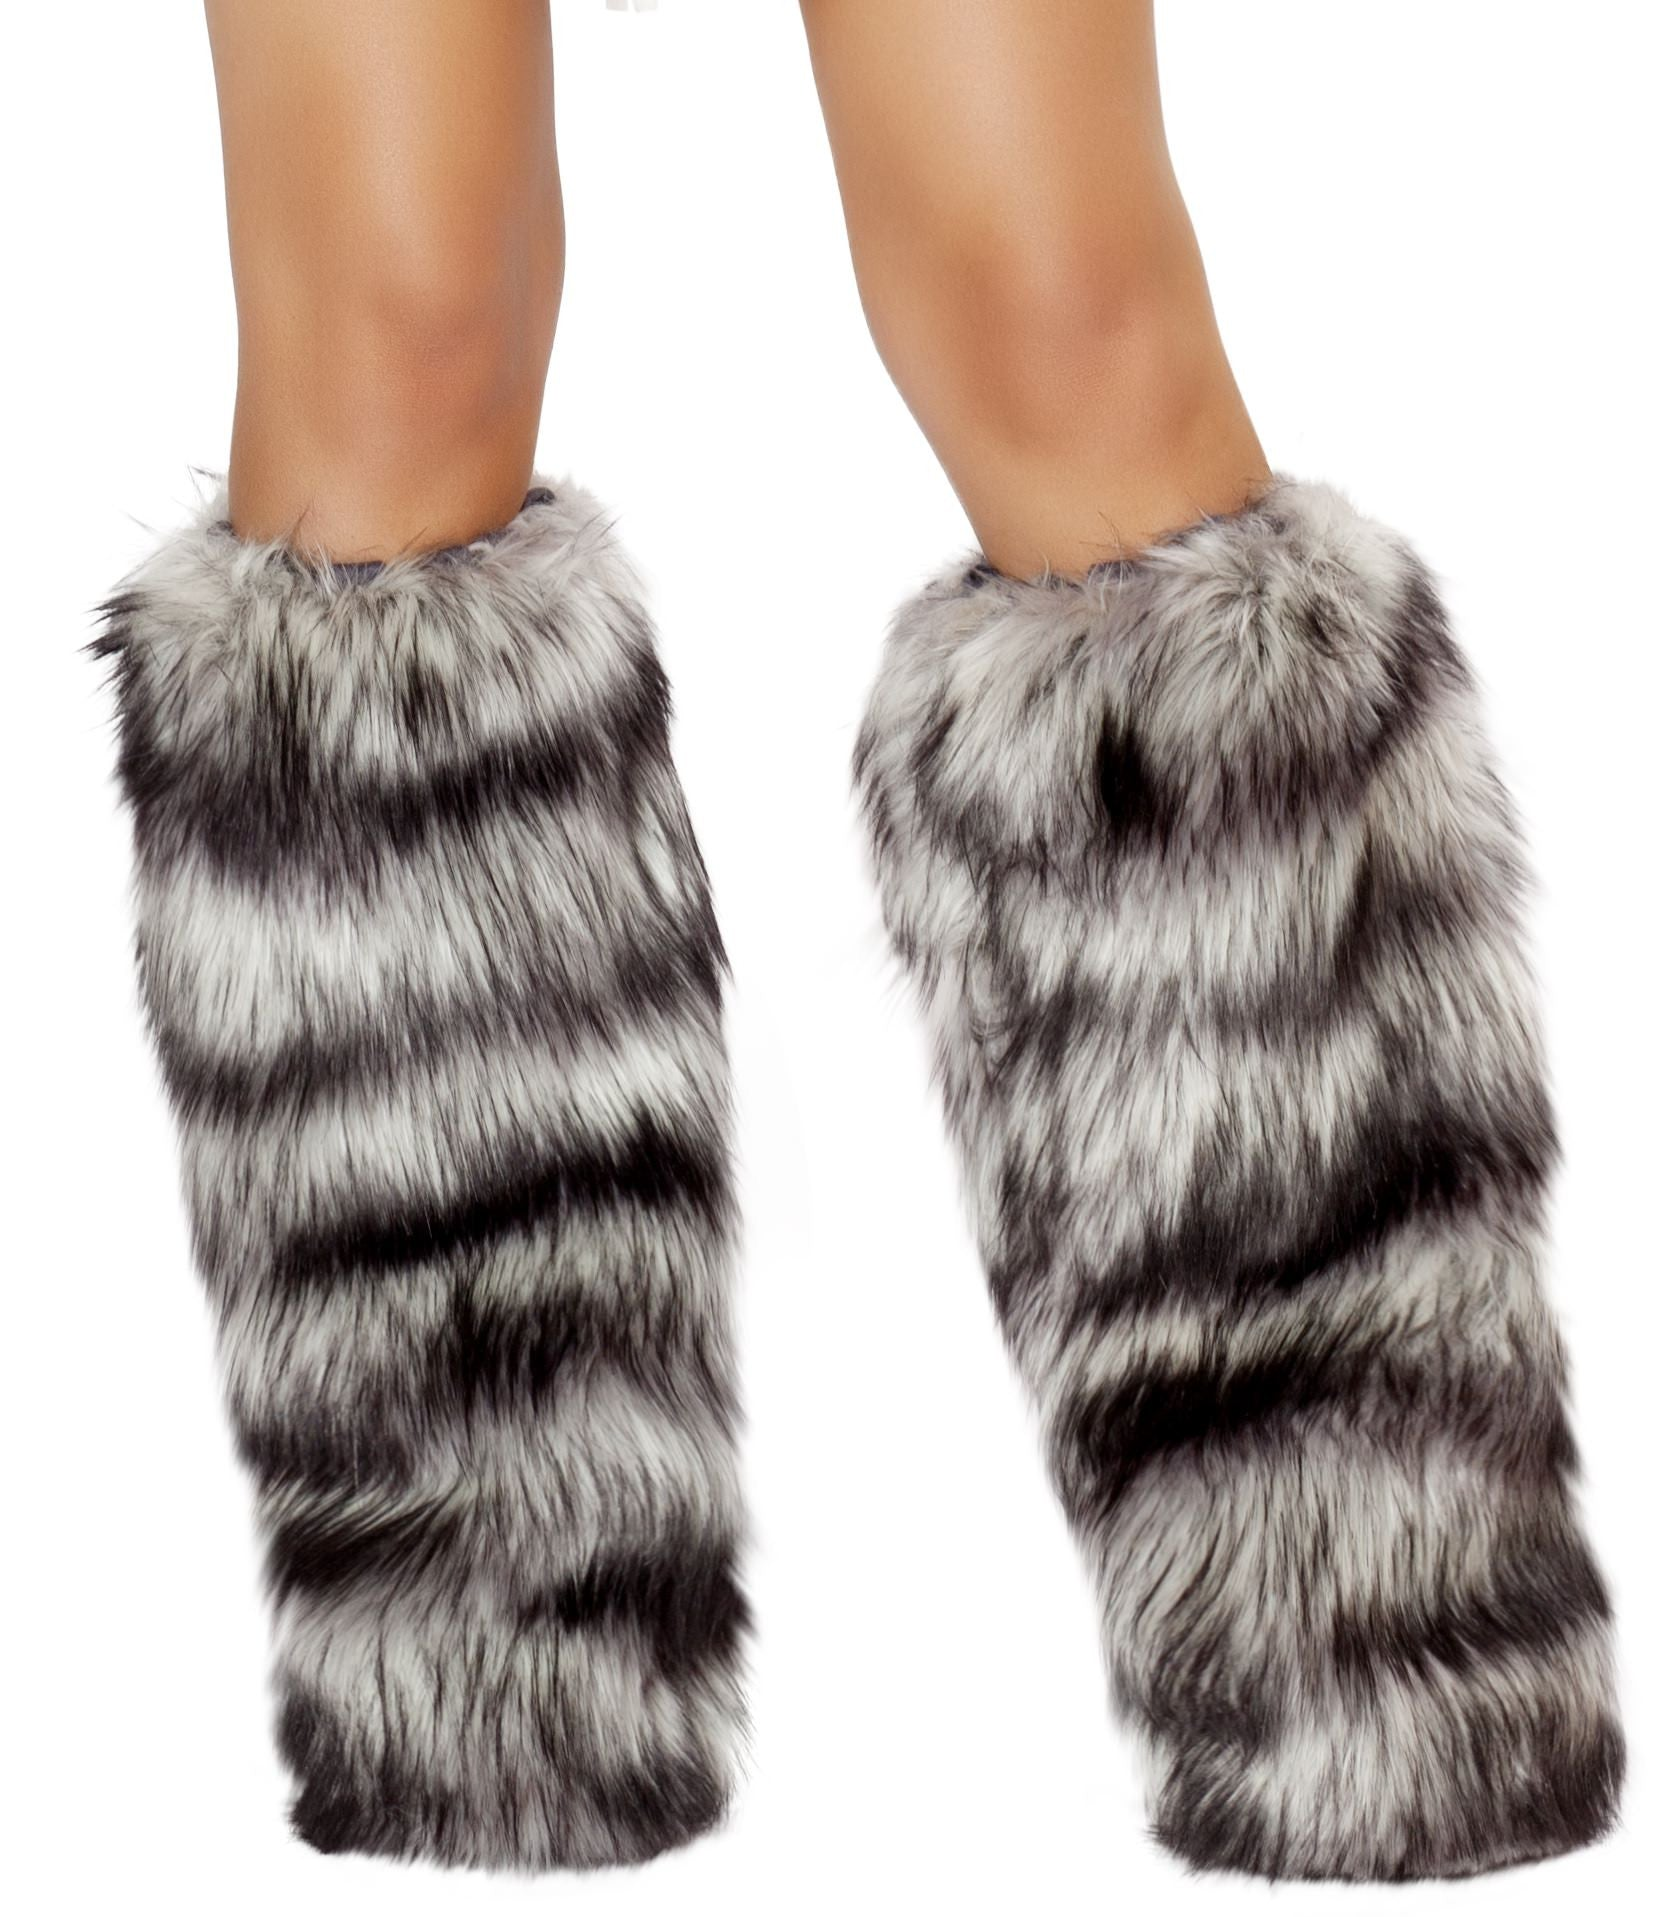 LW4475 Fur Leg Warmer ${description} | Roma Costume and Roma Confidential wholesale manufacturer of Women Apparel bulk world wide wholesale and world wide drop ship services for Adult Halloween Costumes, Sexy and Elegant Lingerie, Rave Clothing, Club wear, and Christmas Costumes. Accessories,2014 Costumes, Roma Costume, Inc., Roma Costume, Roma Confidential, Wholesale clothing, drop ship, drop ship service, Wholesale Lingerie, Wholesale Adult Halloween Costumes, Rave Clothing, EDM Clothing, Festival Wear, Christmas Costumes, Clubwear, Club wear.